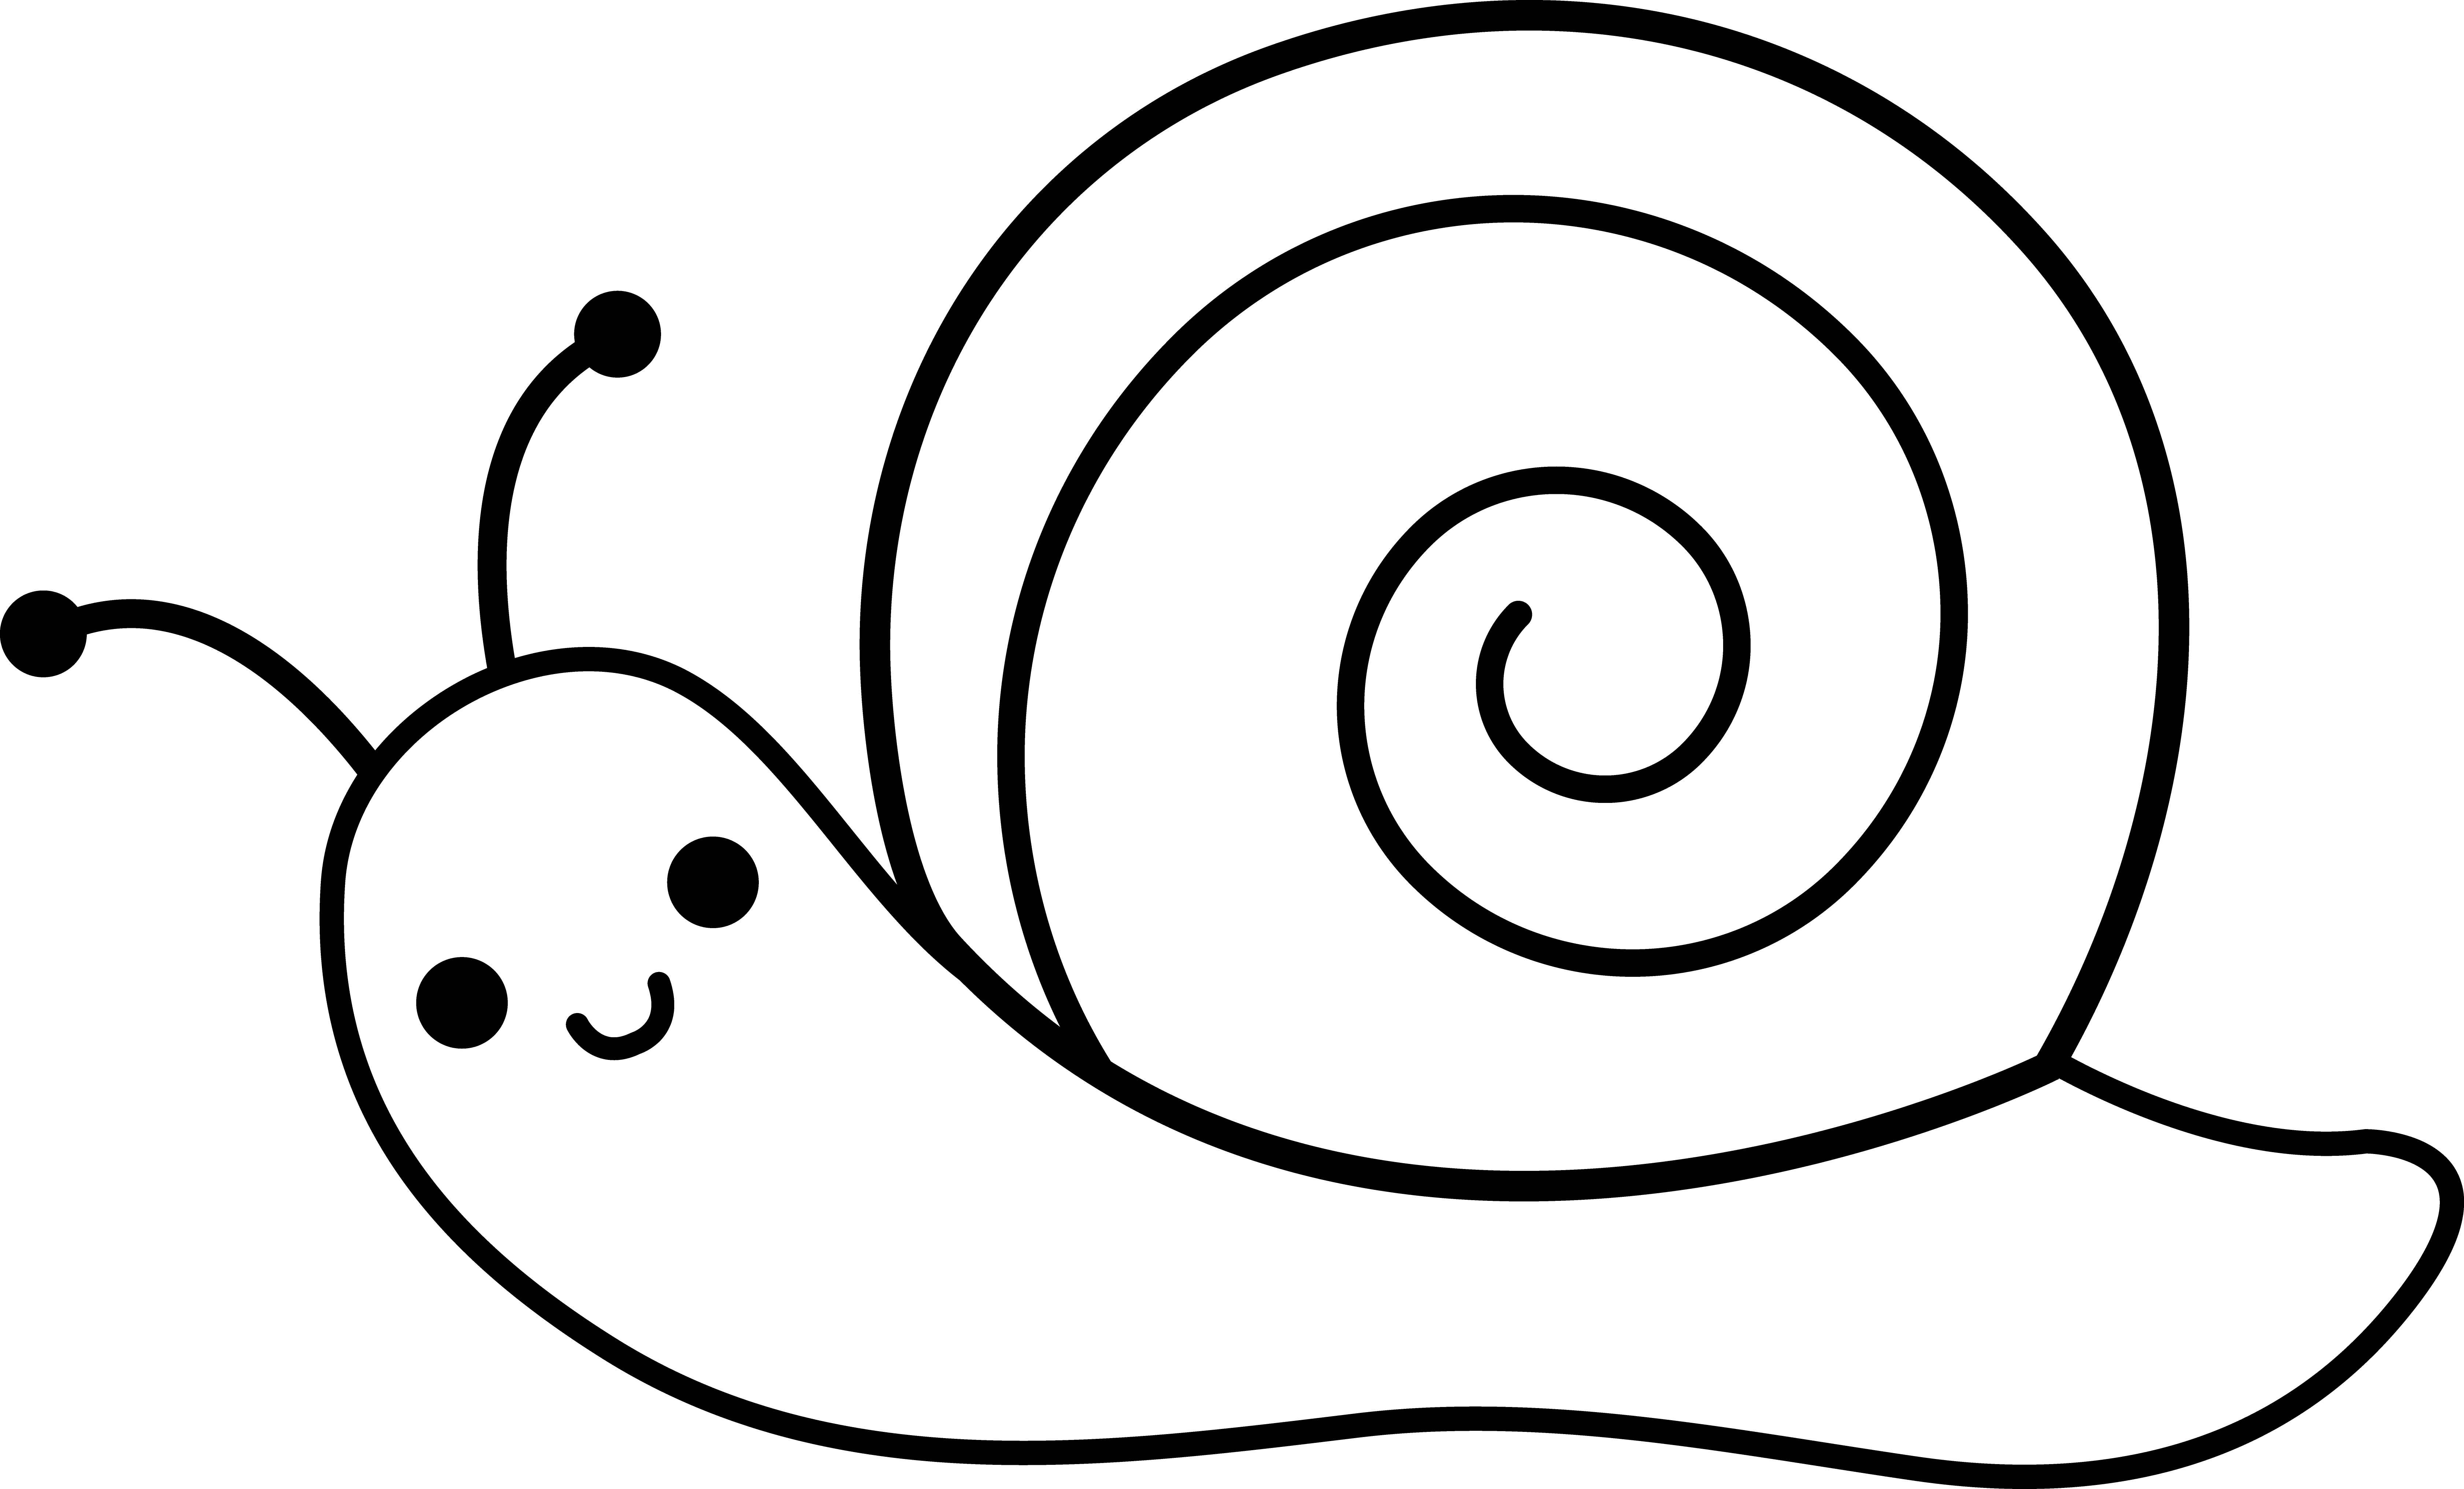 Line Art Snail Easy Drawings